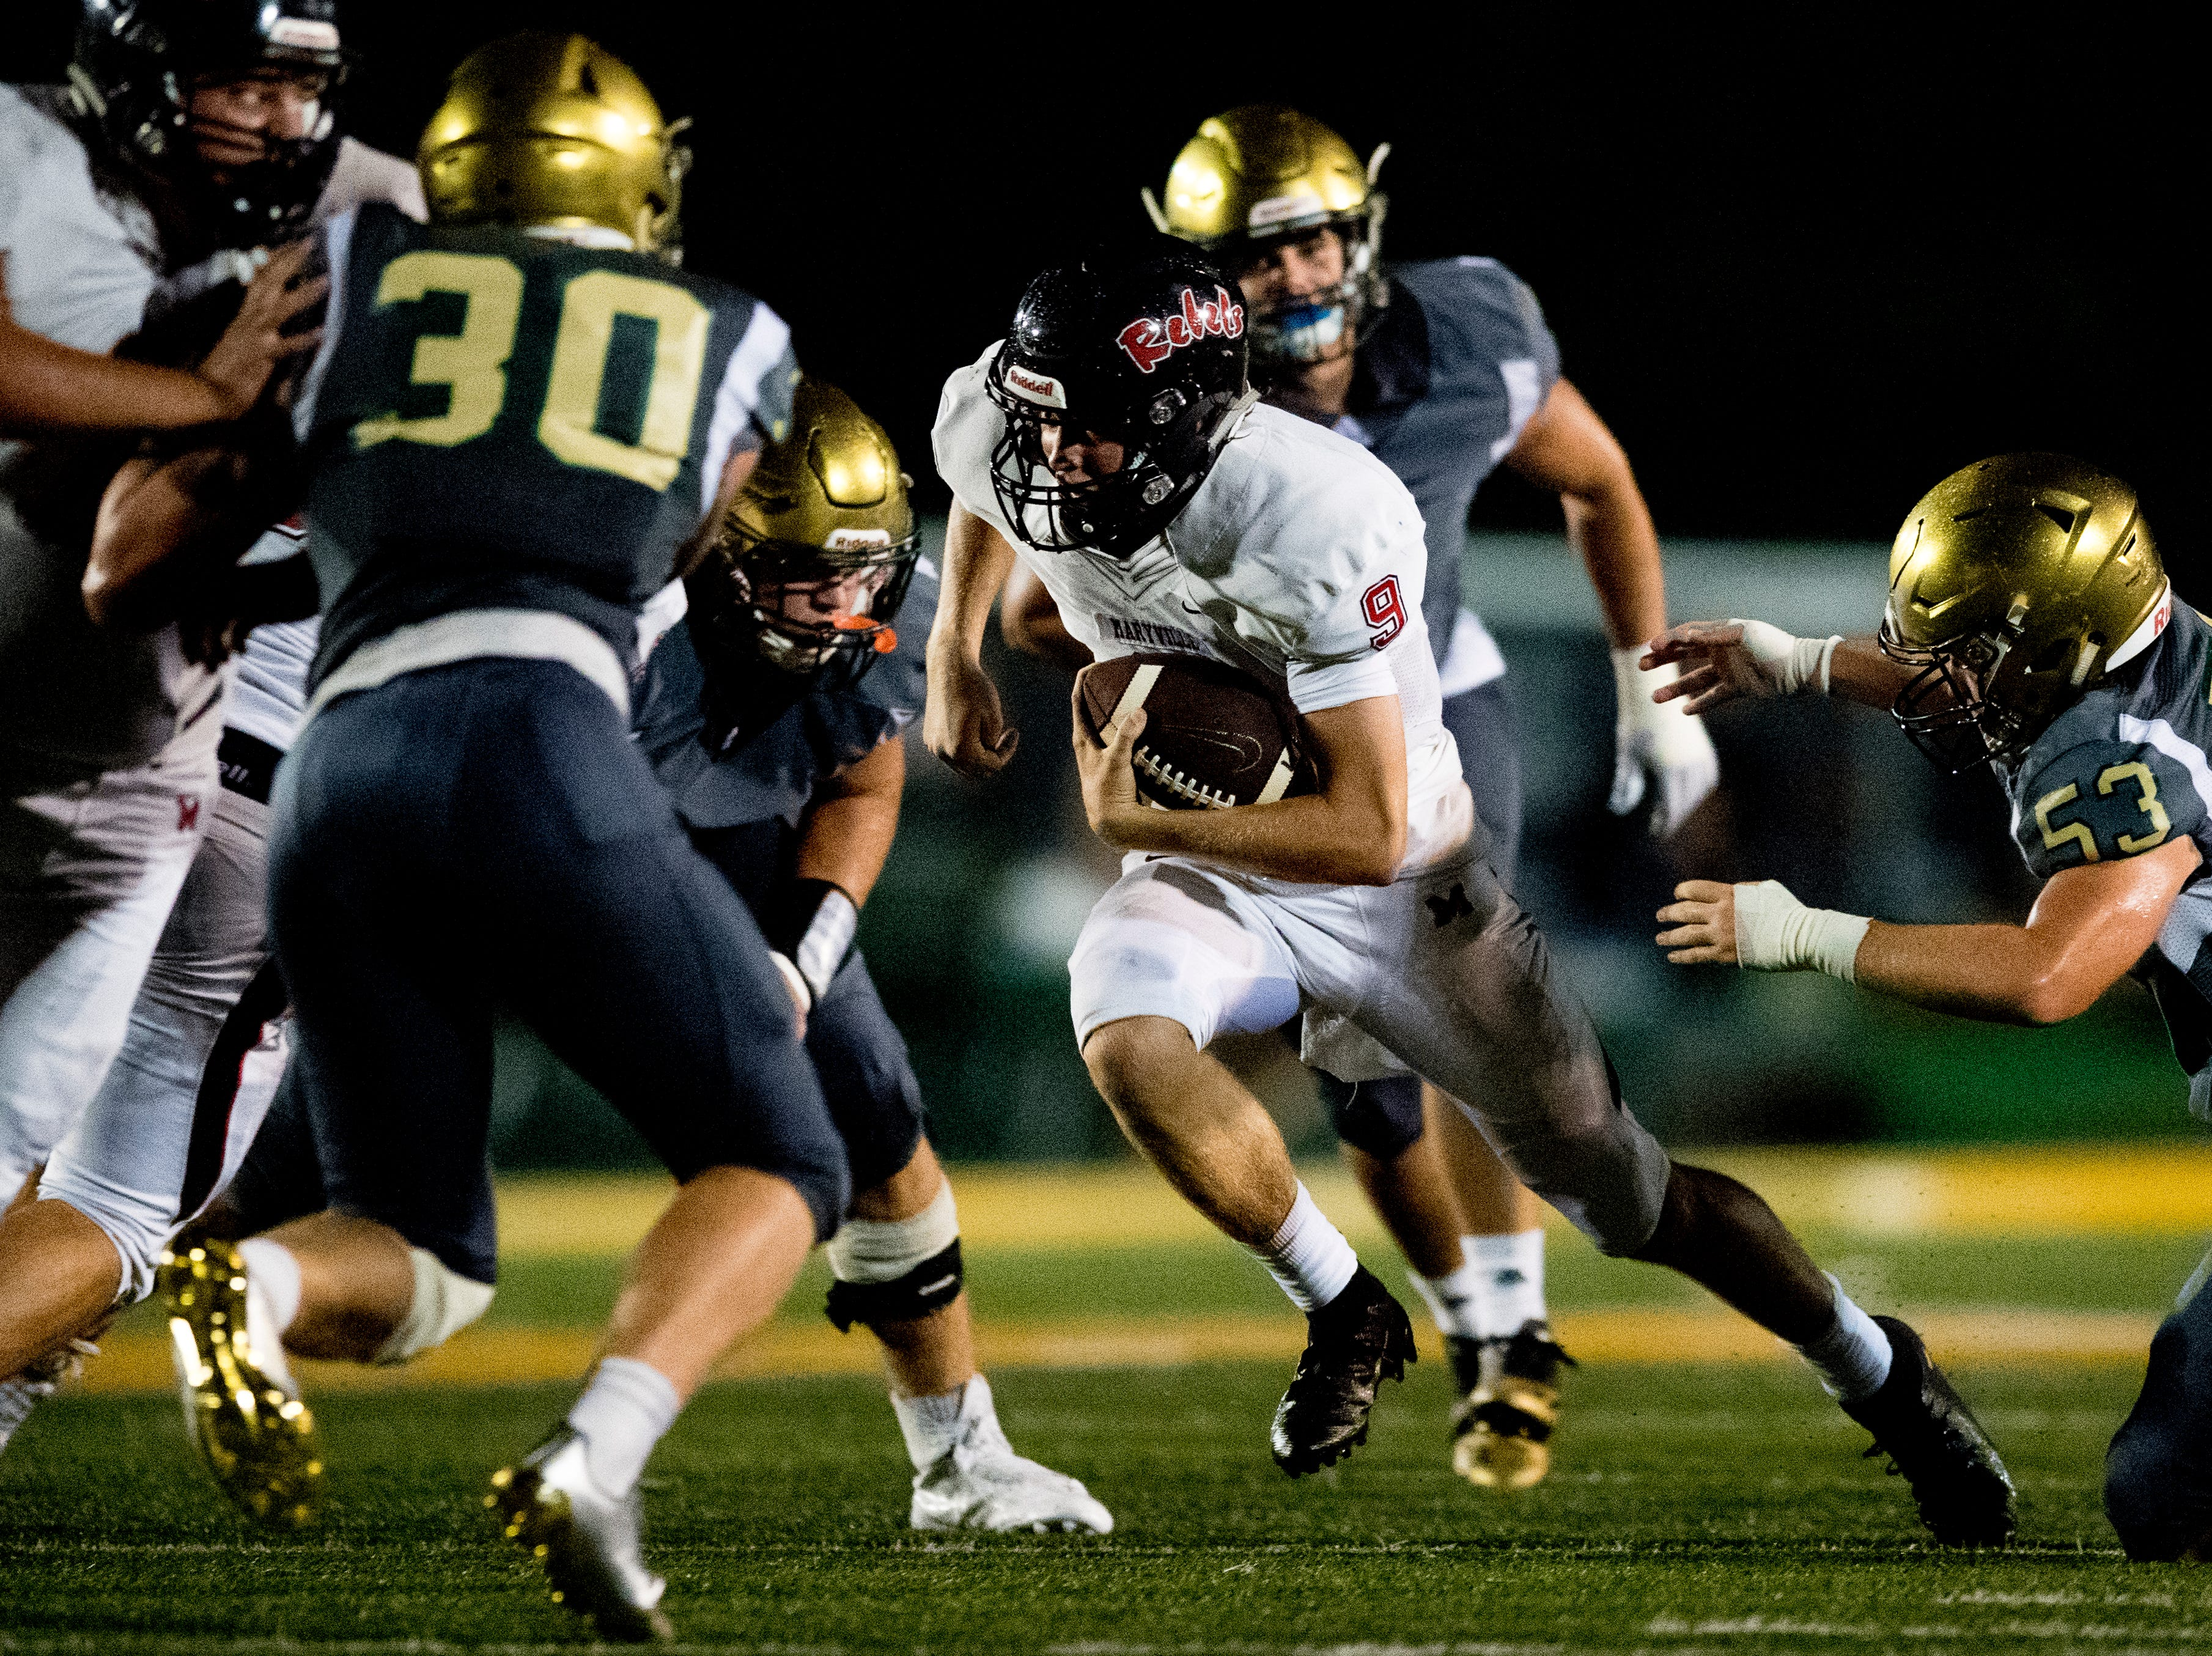 Maryville's Cade Chambers (9) runs through the defense during a football game between Maryville and Catholic at Catholic High School in Knoxville, Tennessee on Friday, August 17, 2018.